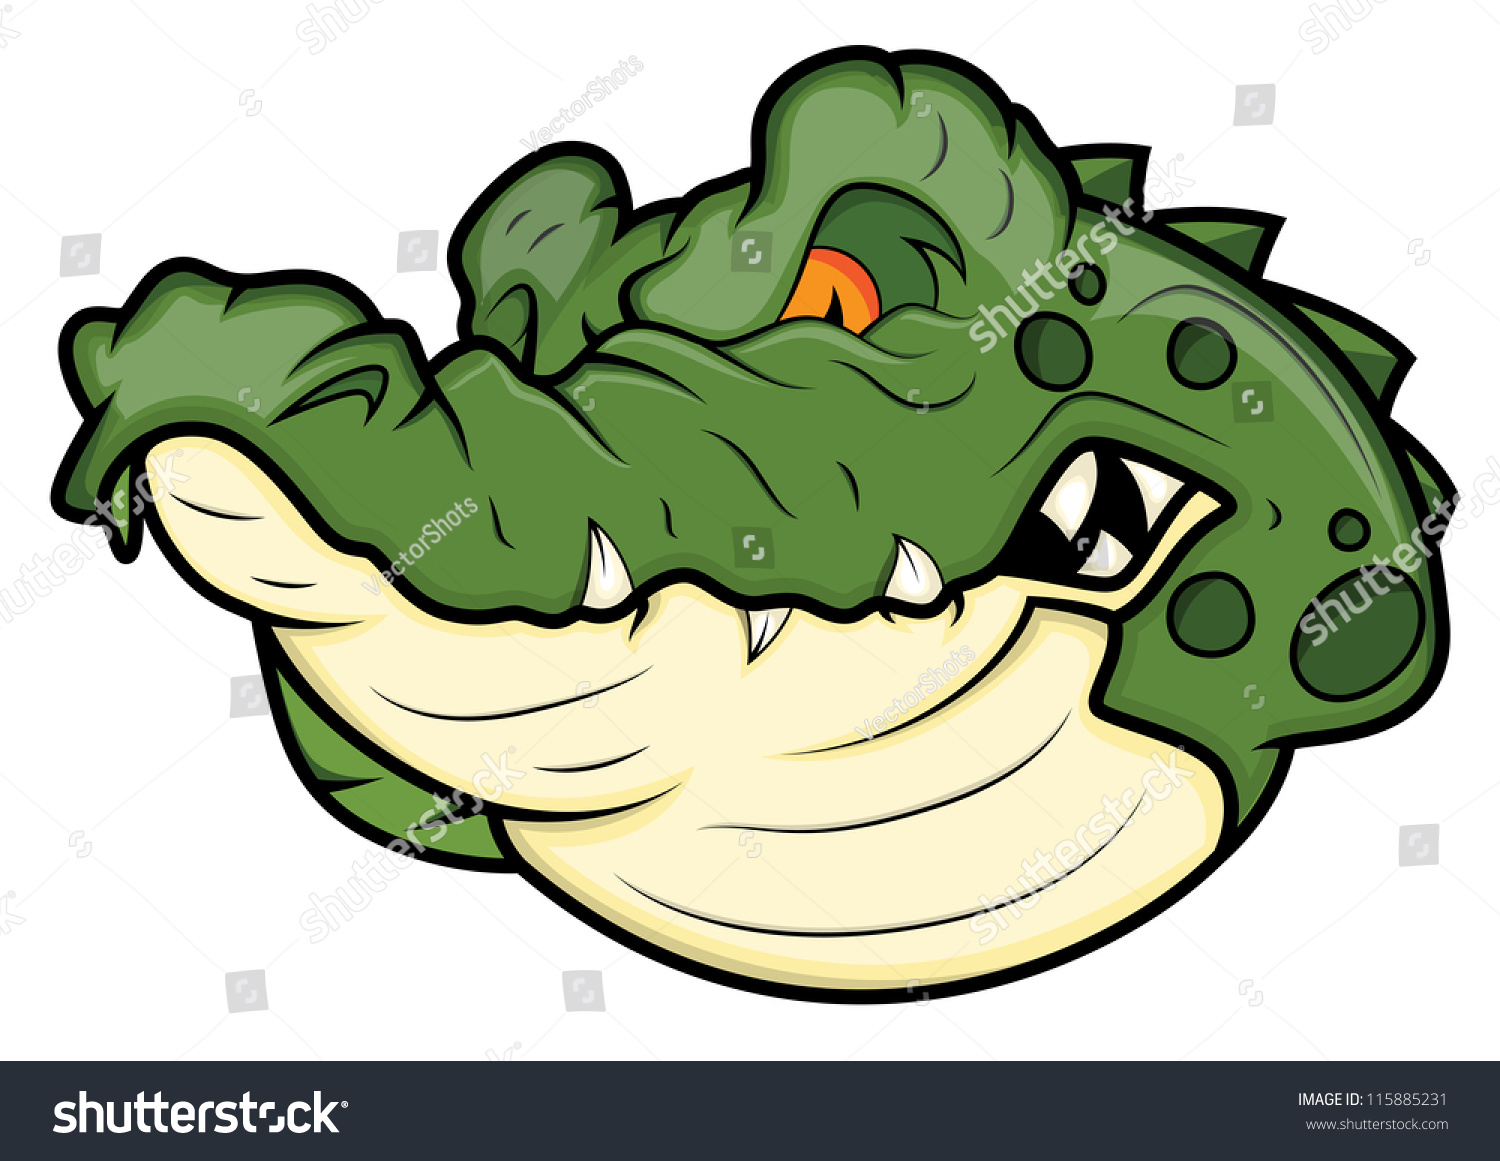 Alligator Clip Symbol Angry Alligator Vector Mascot Stock Vector 115885231